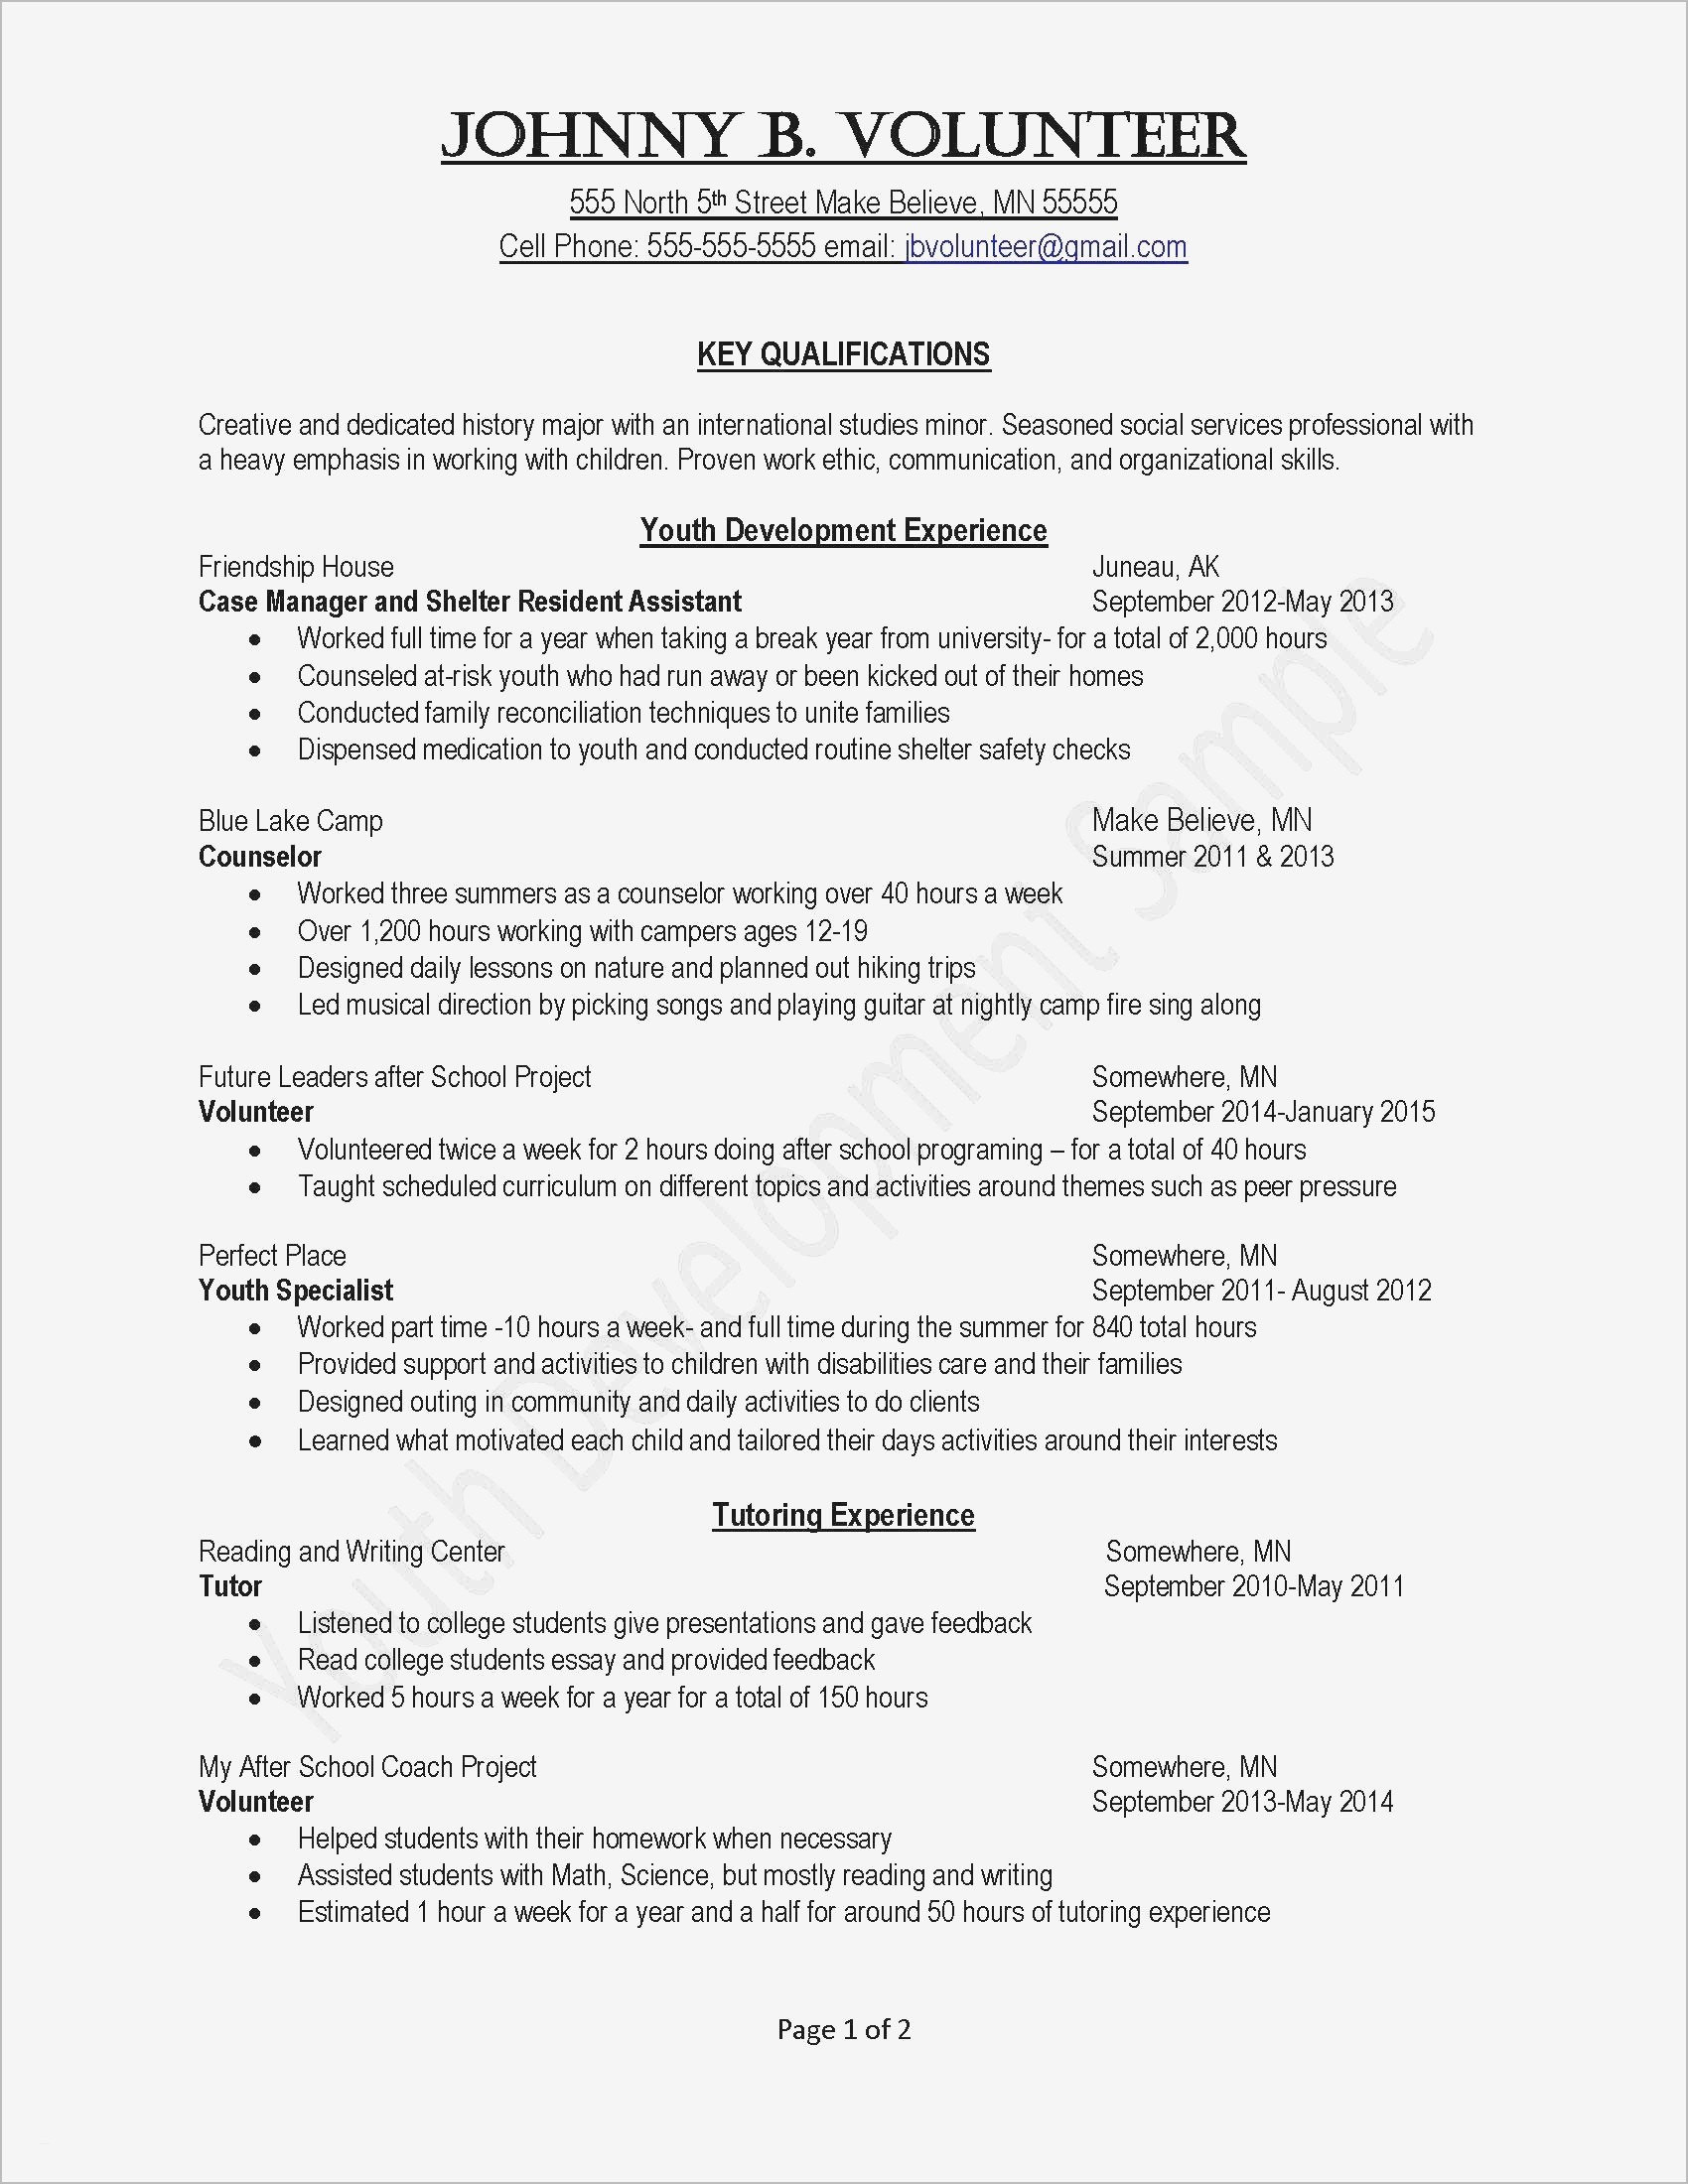 Clinical Site Selection Letter Template - Activities Resume Template Valid Job Fer Letter Template Us Copy Od